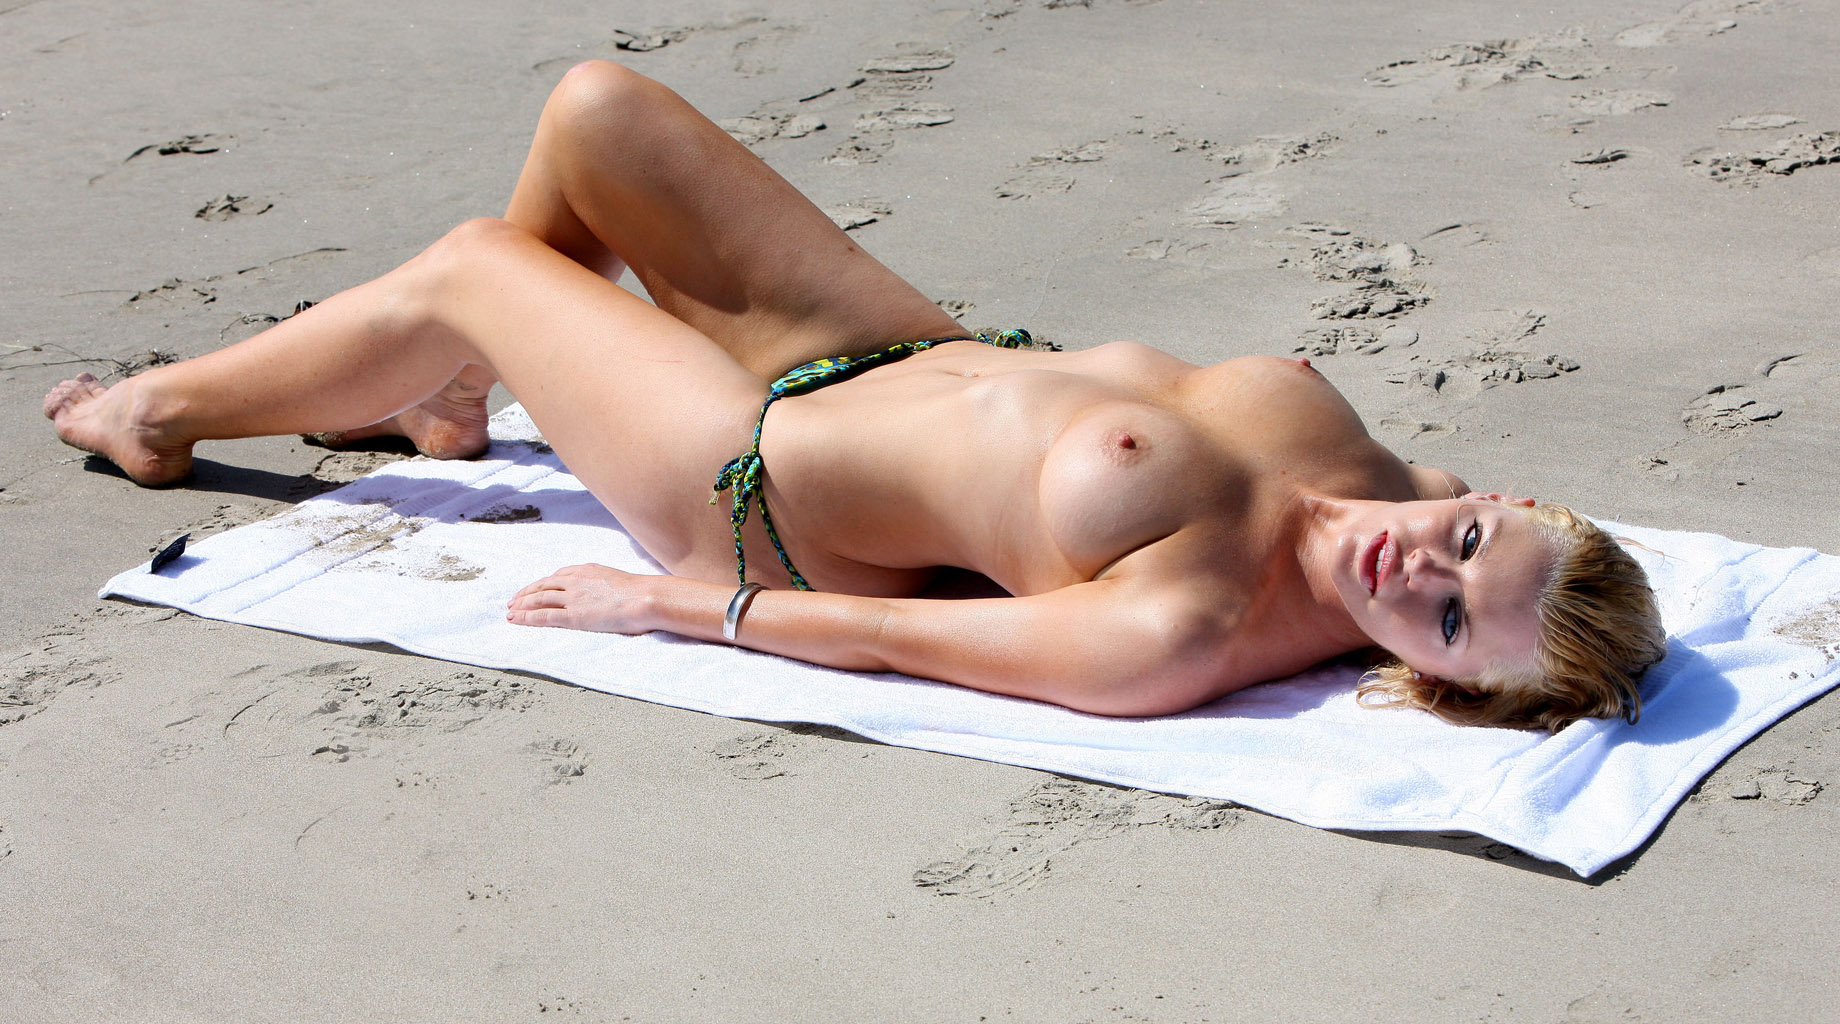 Topless beaches with pics